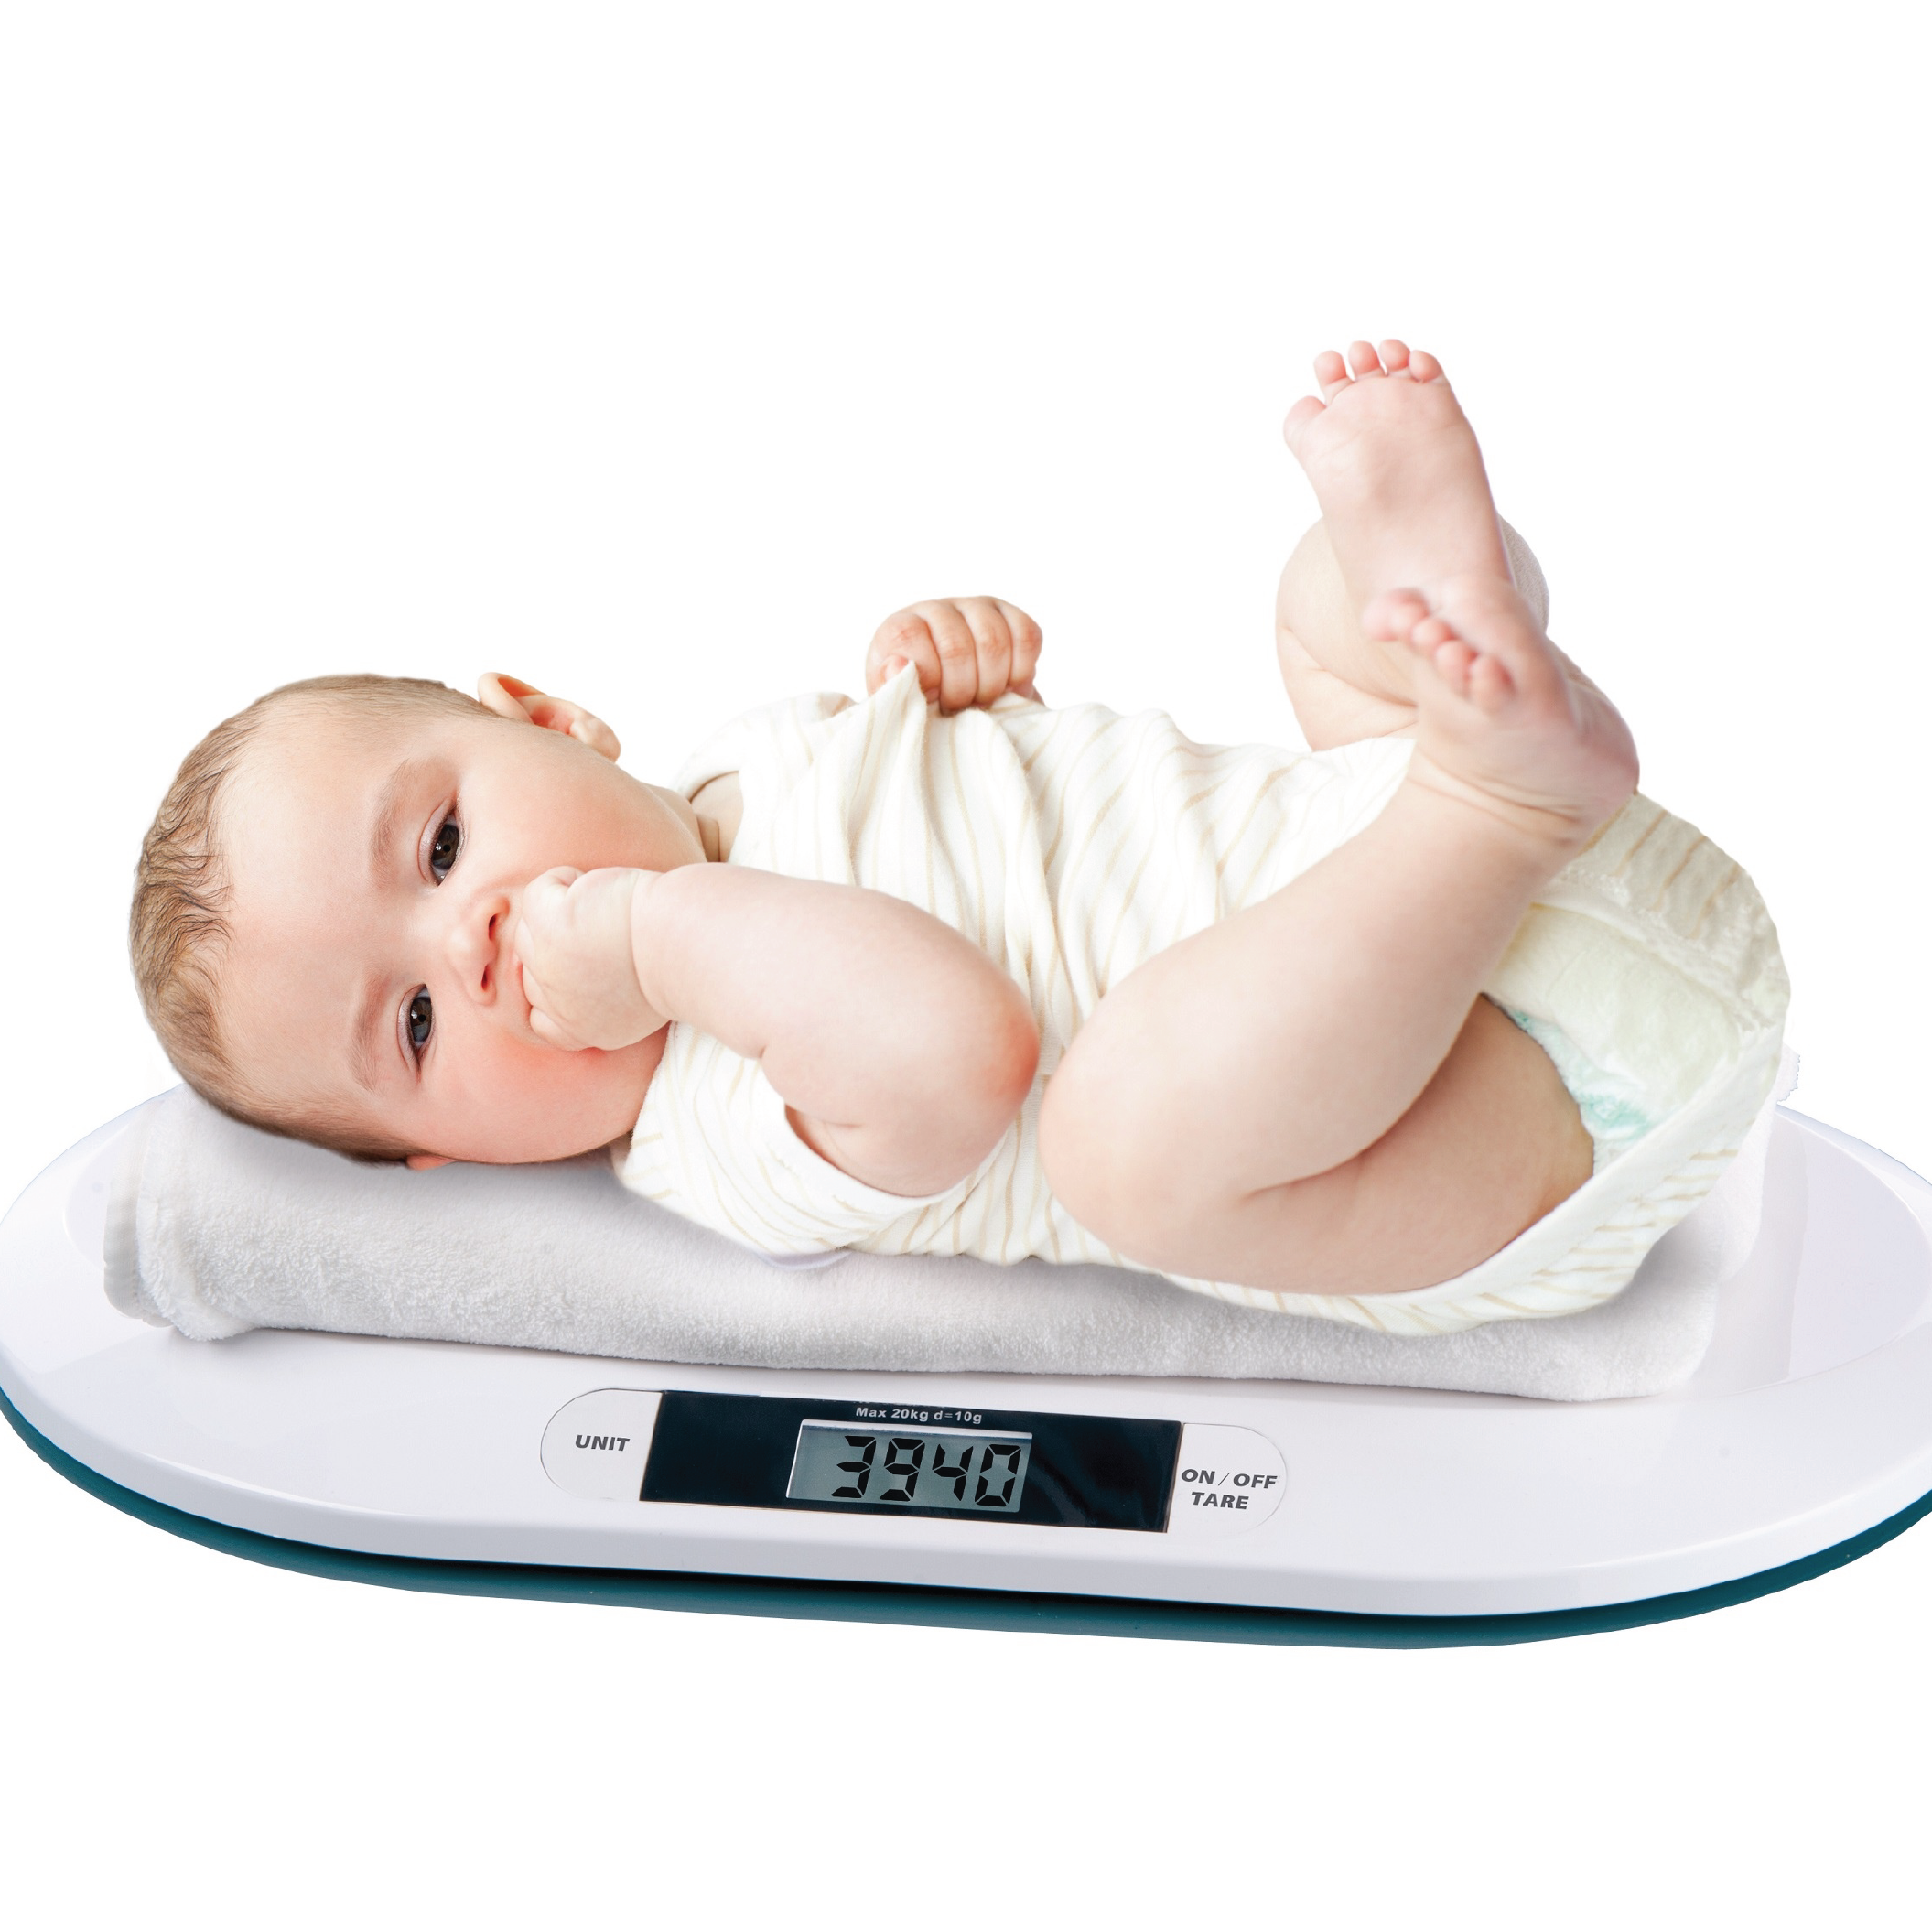 Weighing Scale-dealers in-Bangalore